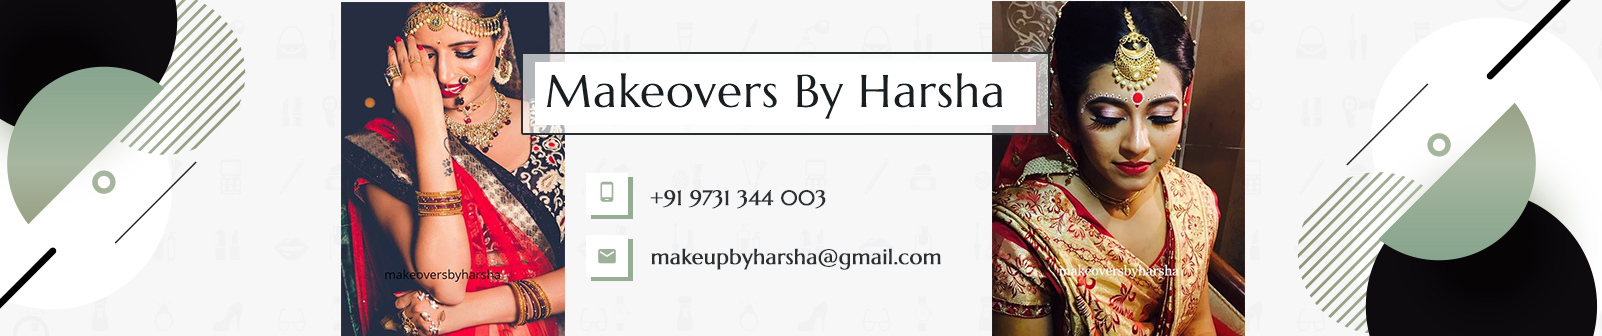 Makeover By Harsha